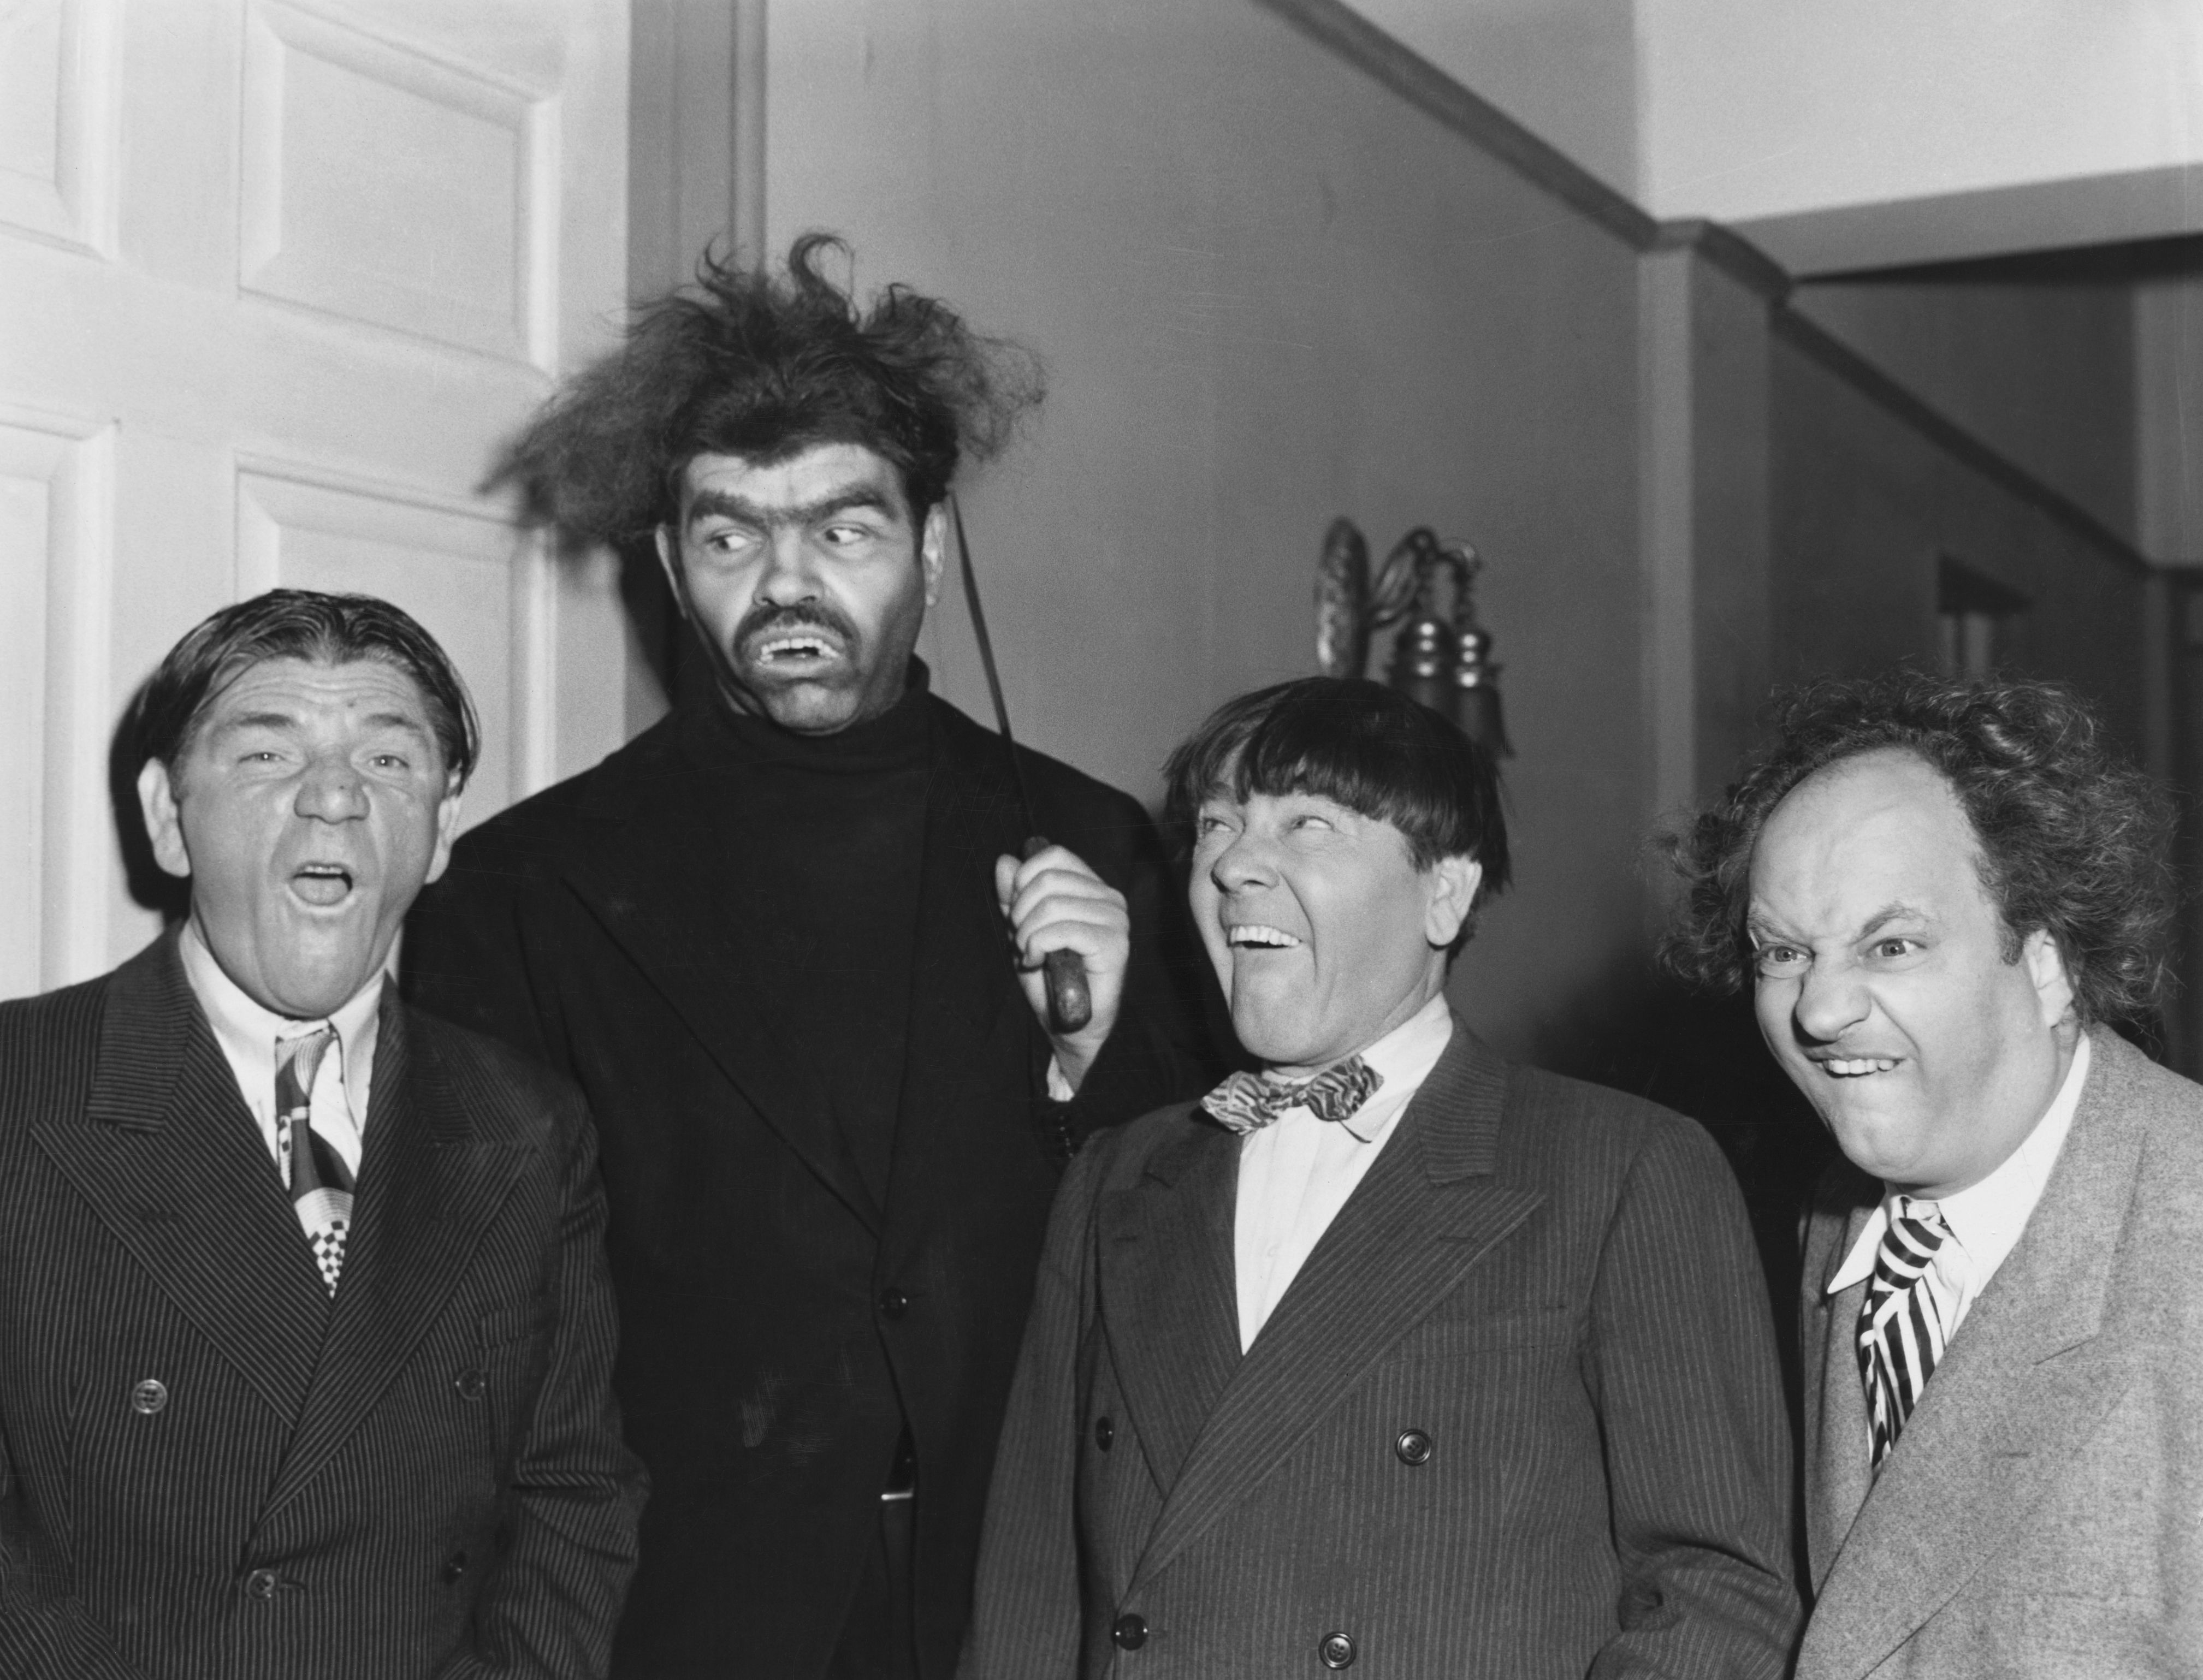 Duke York with The Three Stooges